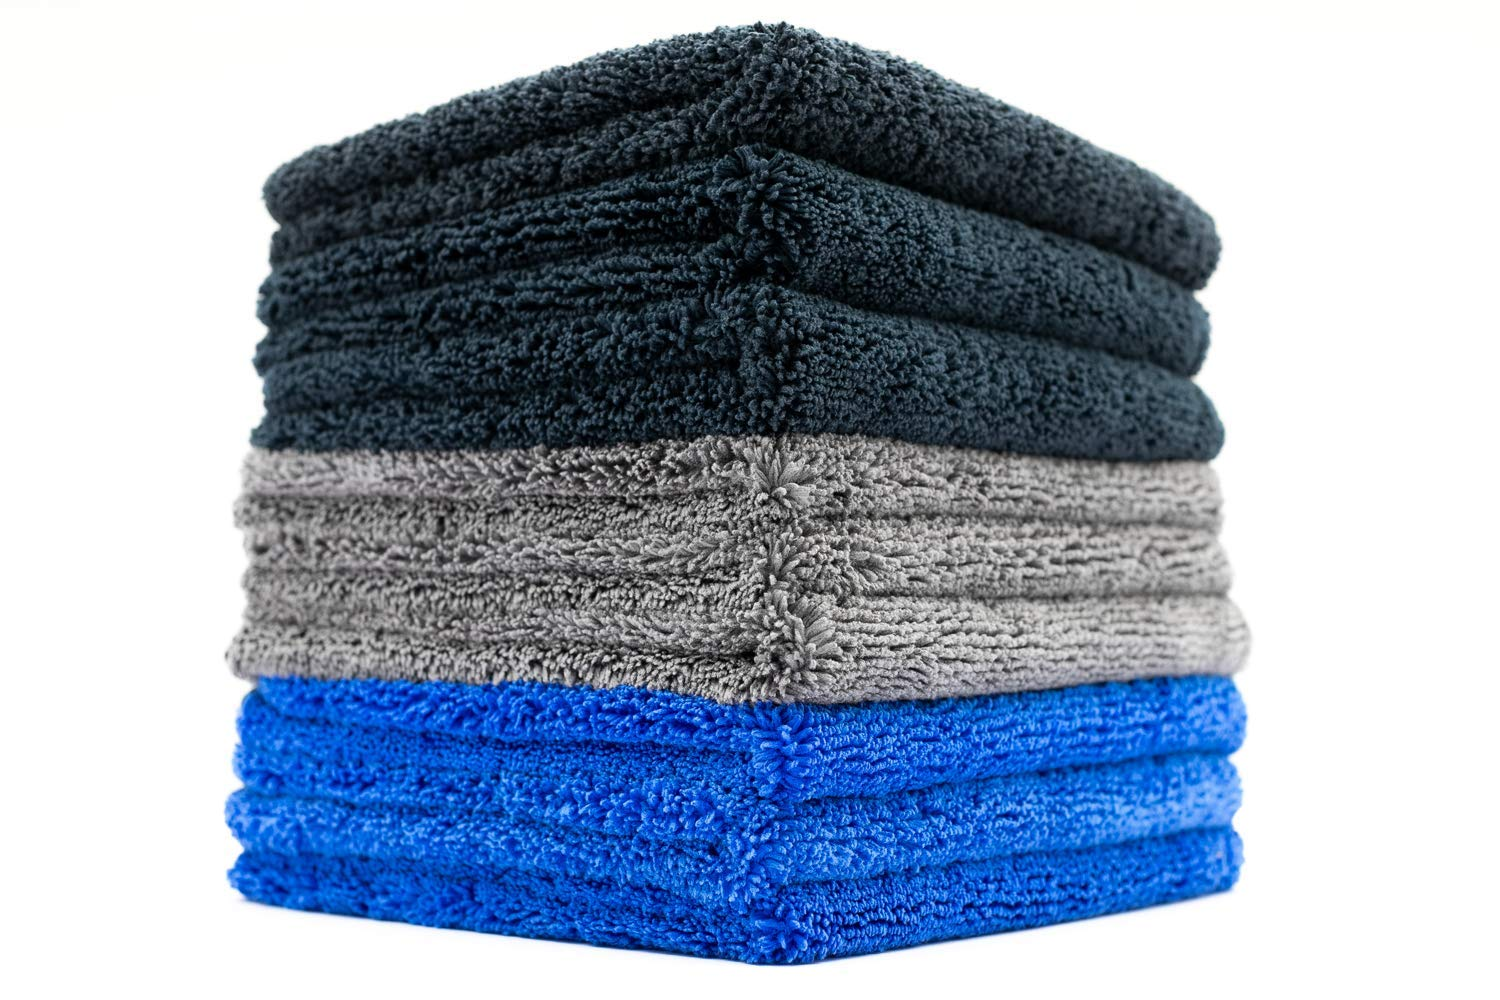 (9-Pack) THE RAG COMPANY 16 in. x 16 in. Professional 70/30 Blend 420 GSM Dual-Pile Plush Microfiber Auto Detailing Towels - Spectrum 420 DARK PACK 71MpXDab6aL